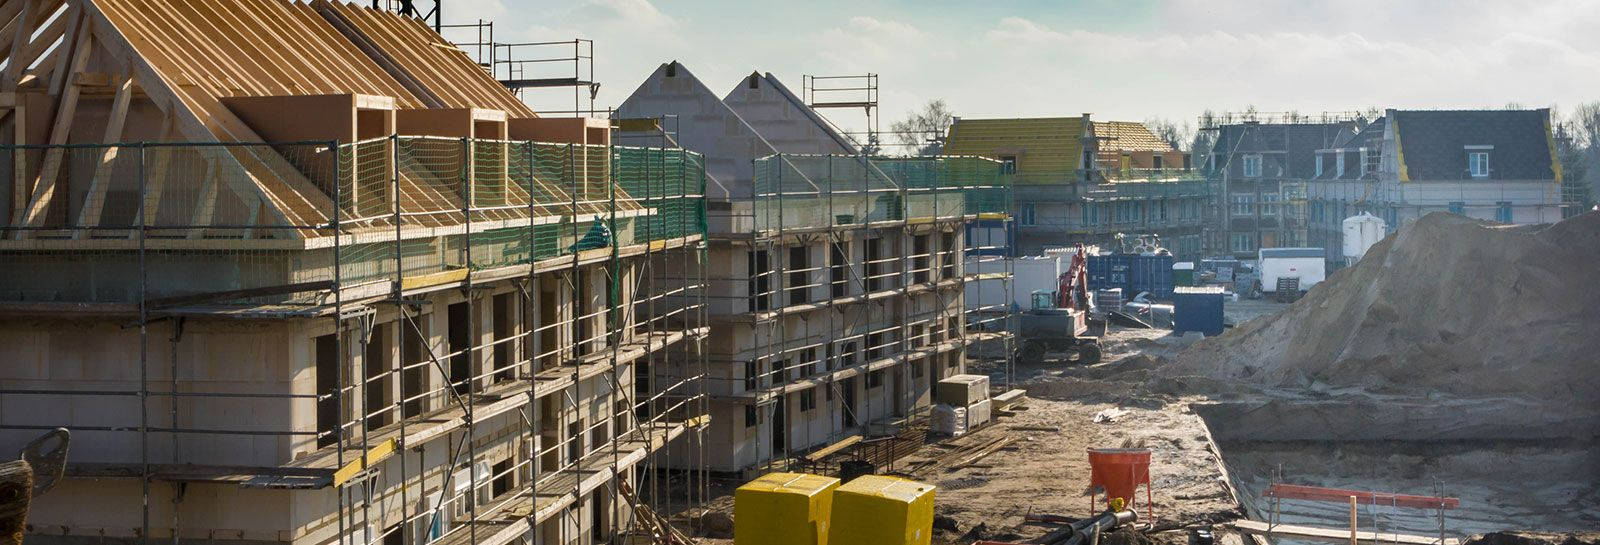 Houses under construction on building site banner image